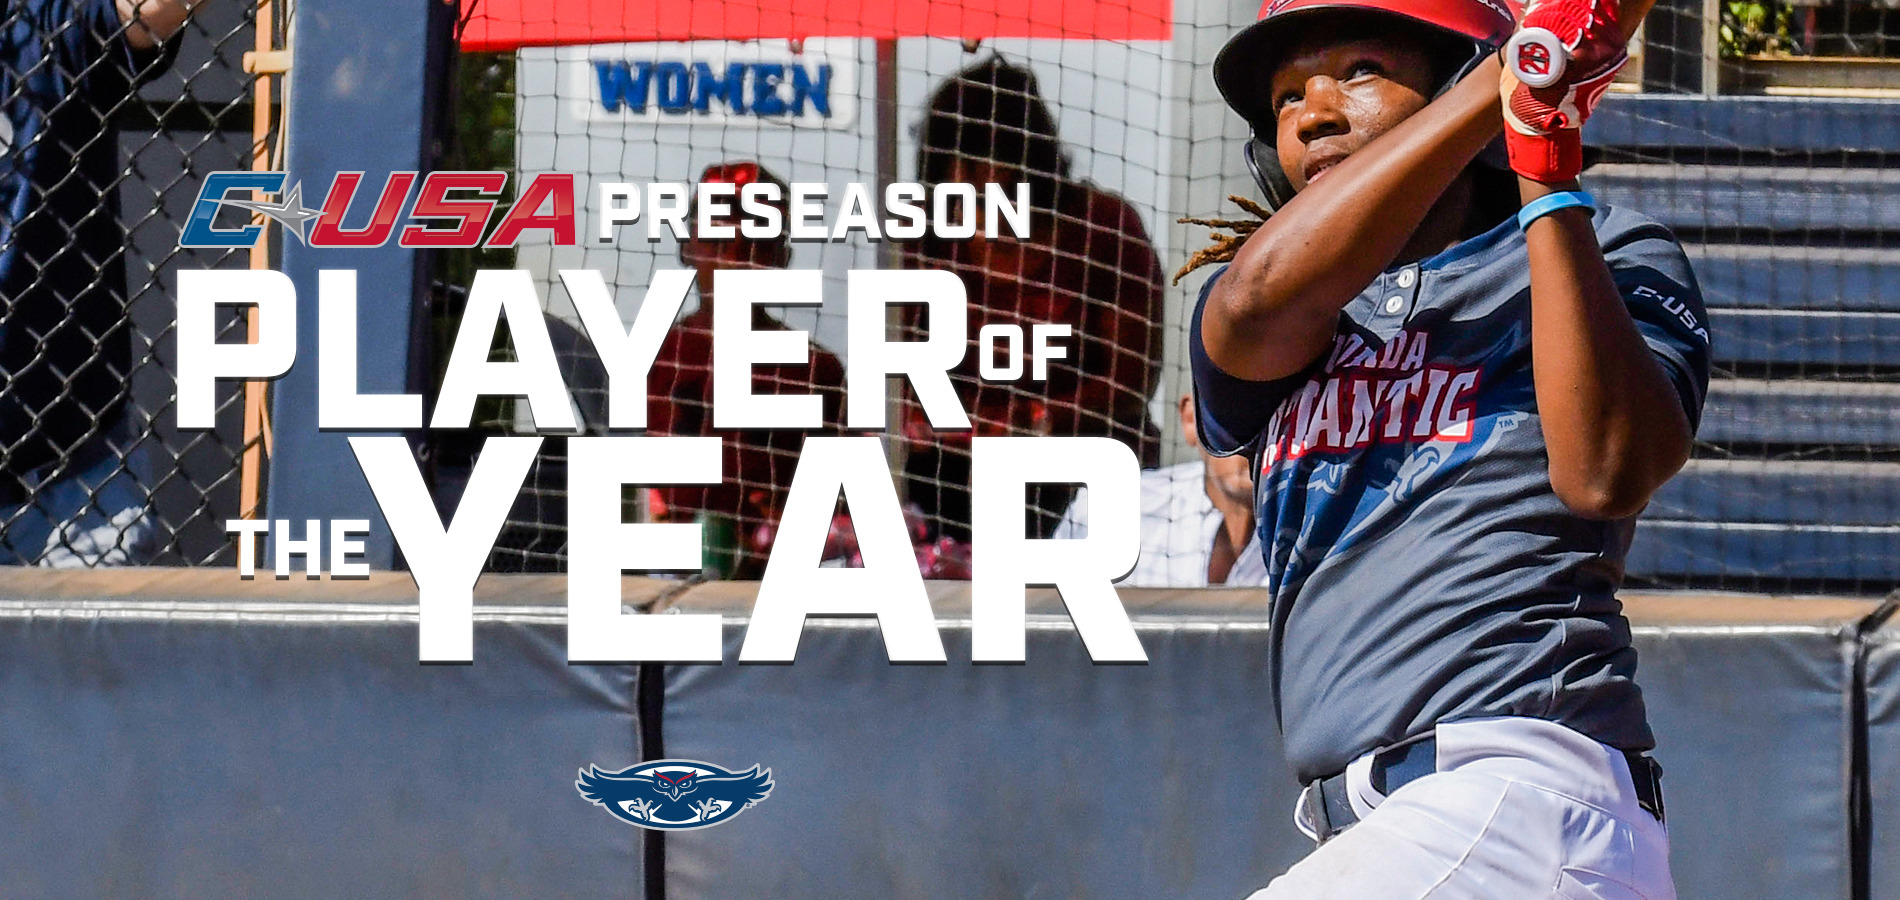 Emily Lochten was named C-USA Preseason Player of the Year.